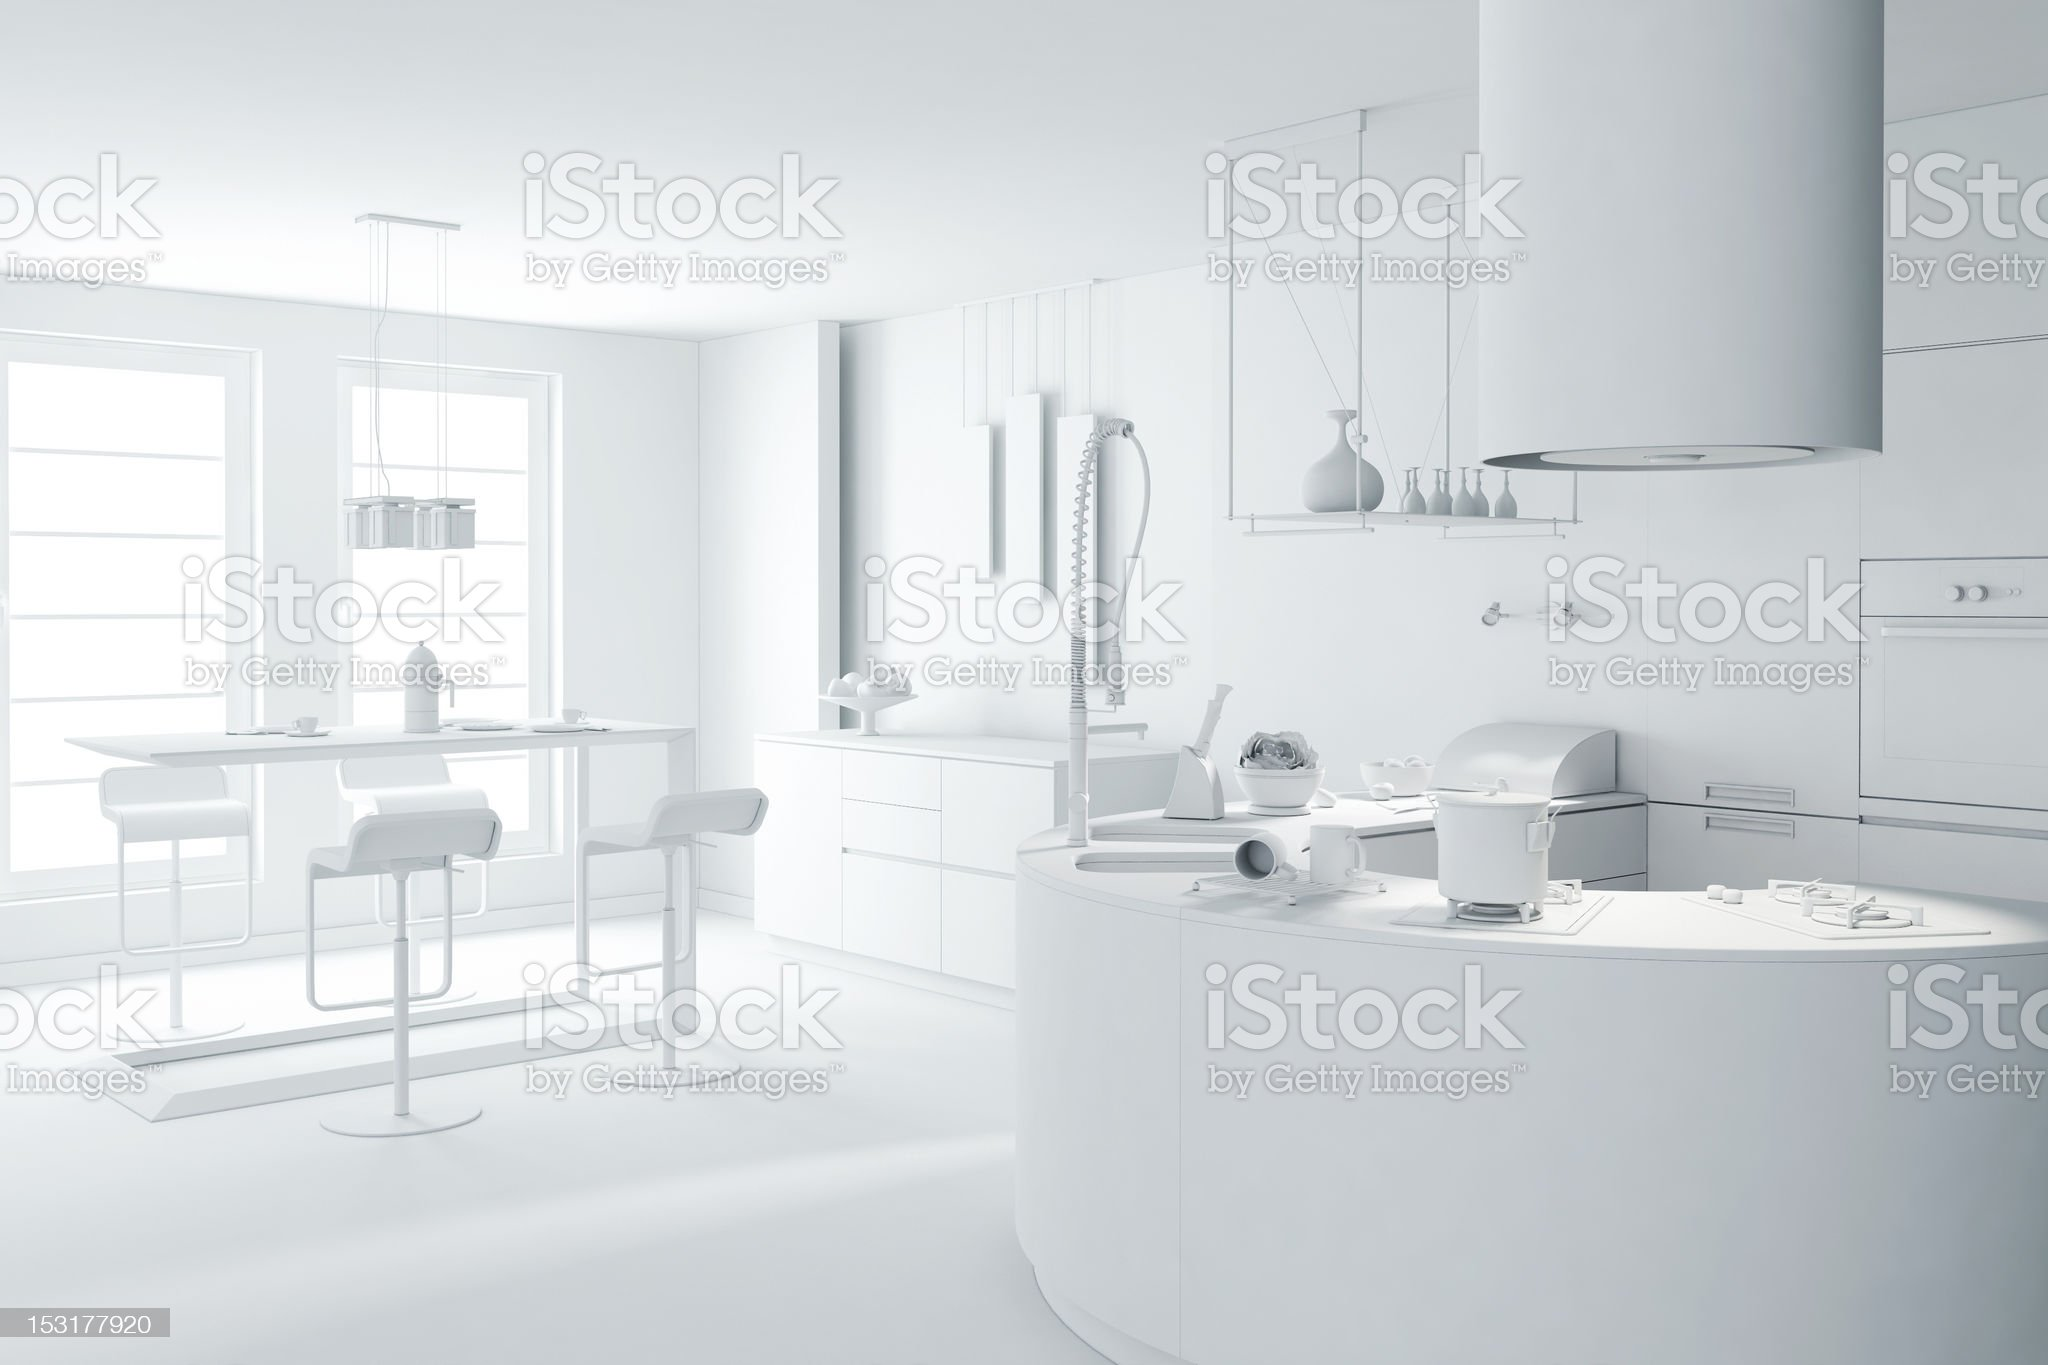 3D image render of a modern interior design in white royalty-free stock photo